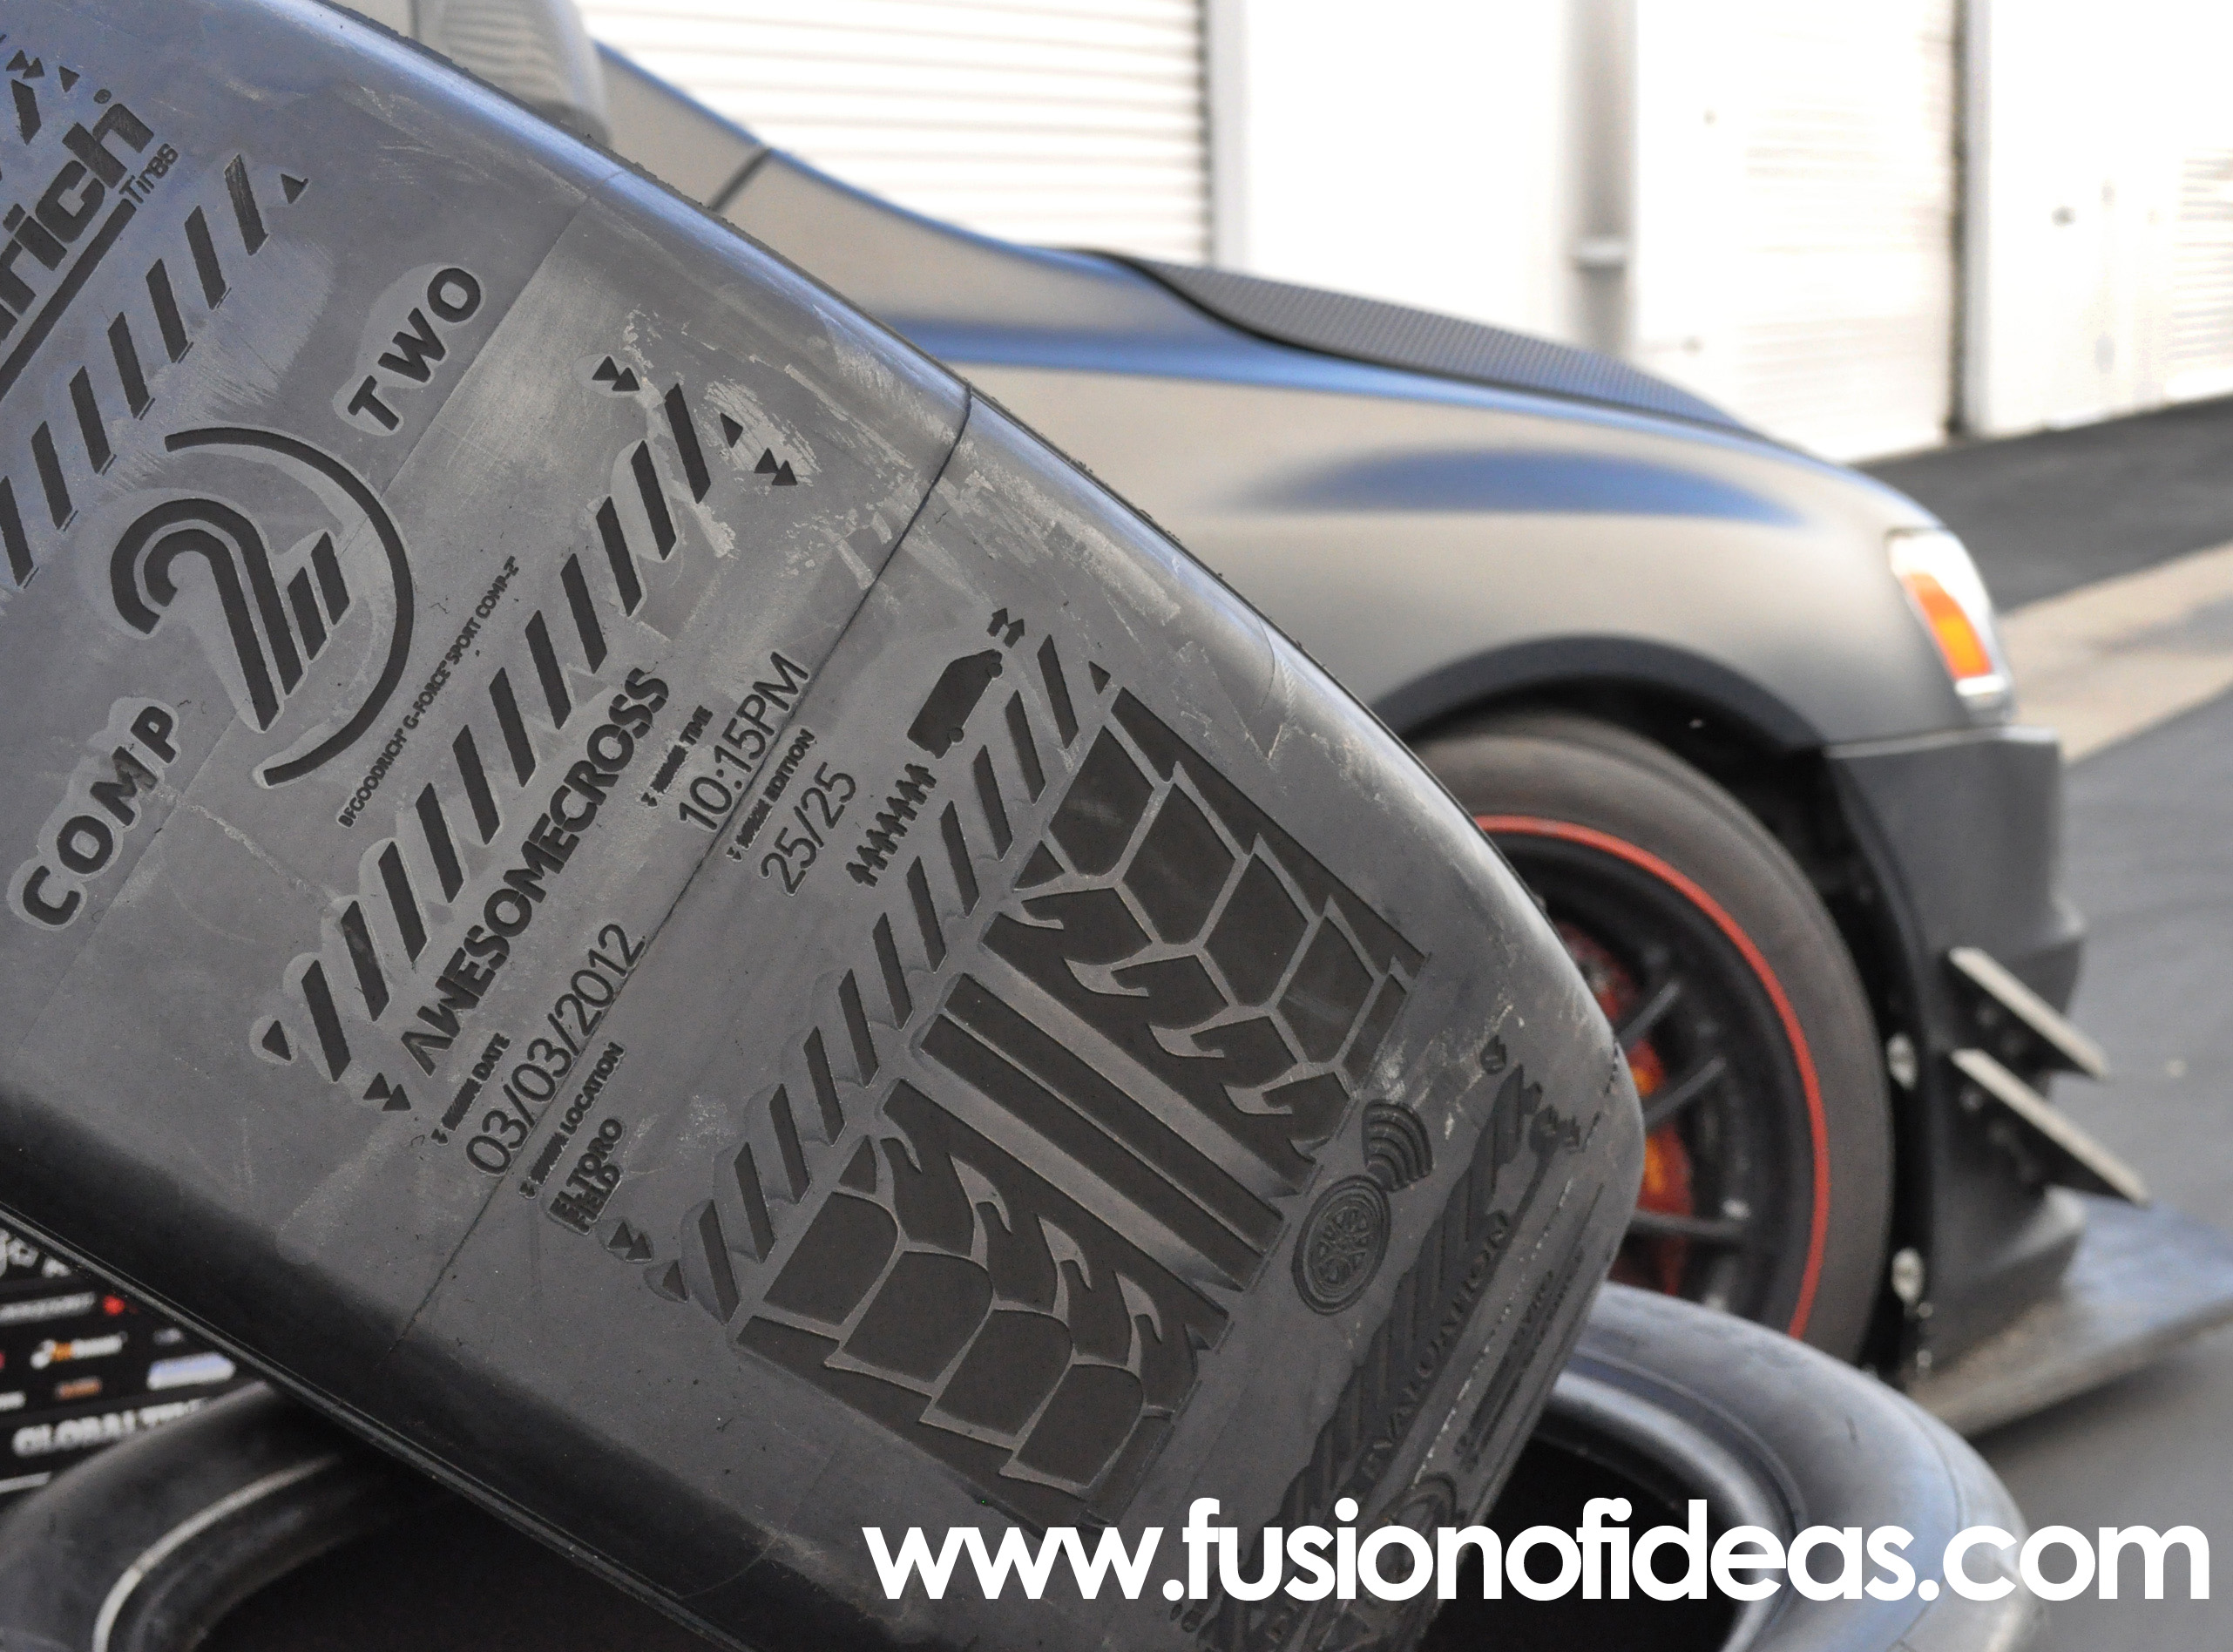 BFGoodrich AWESOMECROSS used tires to invite participants. Fusion of Ideas was commissioned to laser etch the tires.